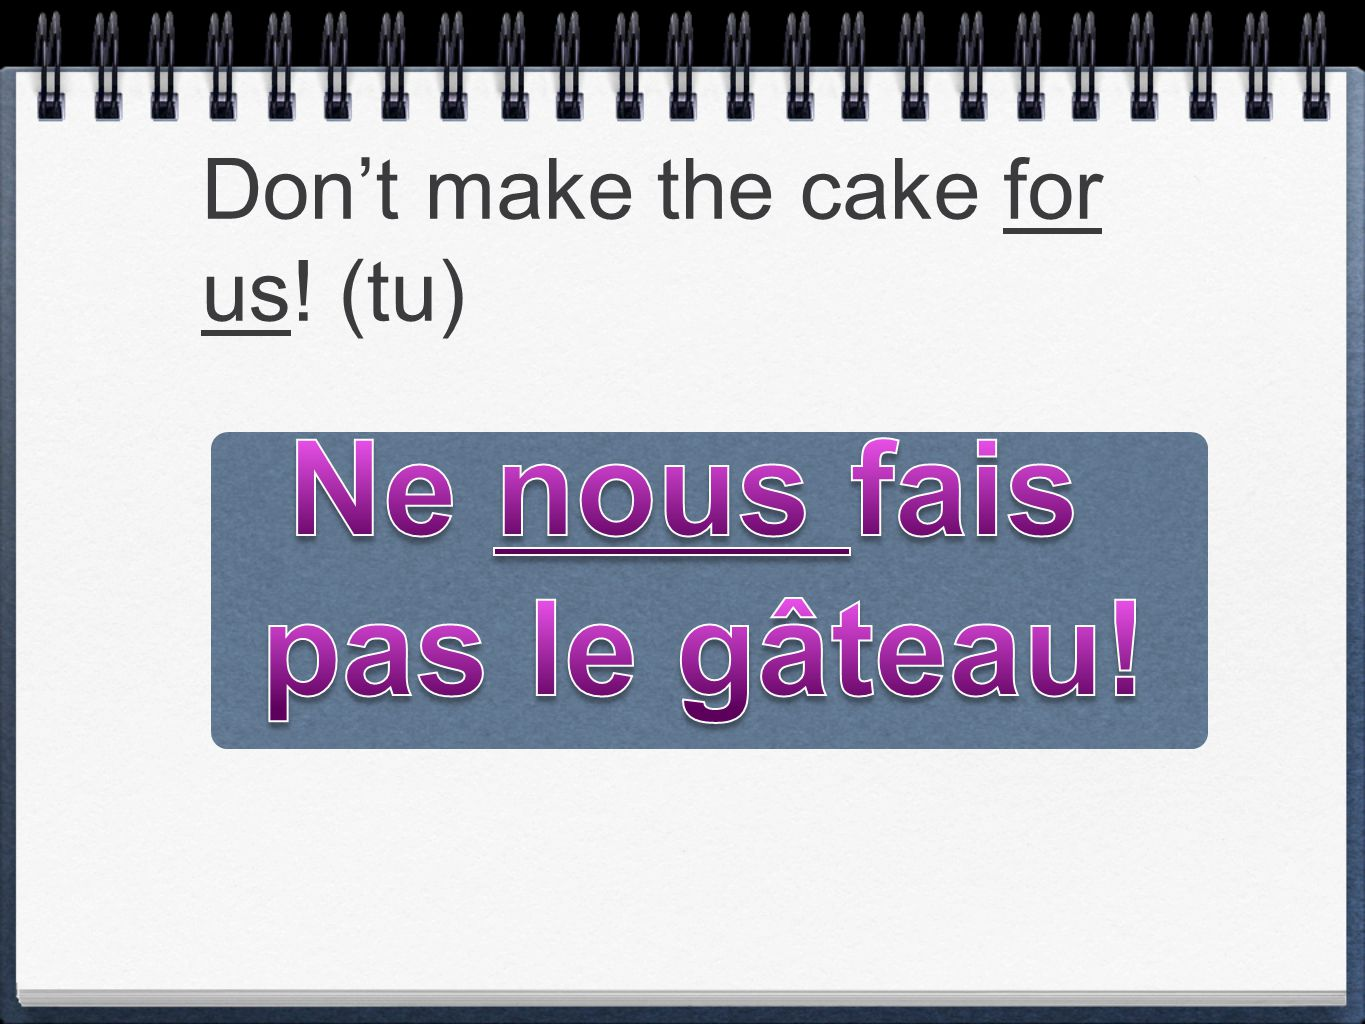 Don't make the cake for us! (tu)